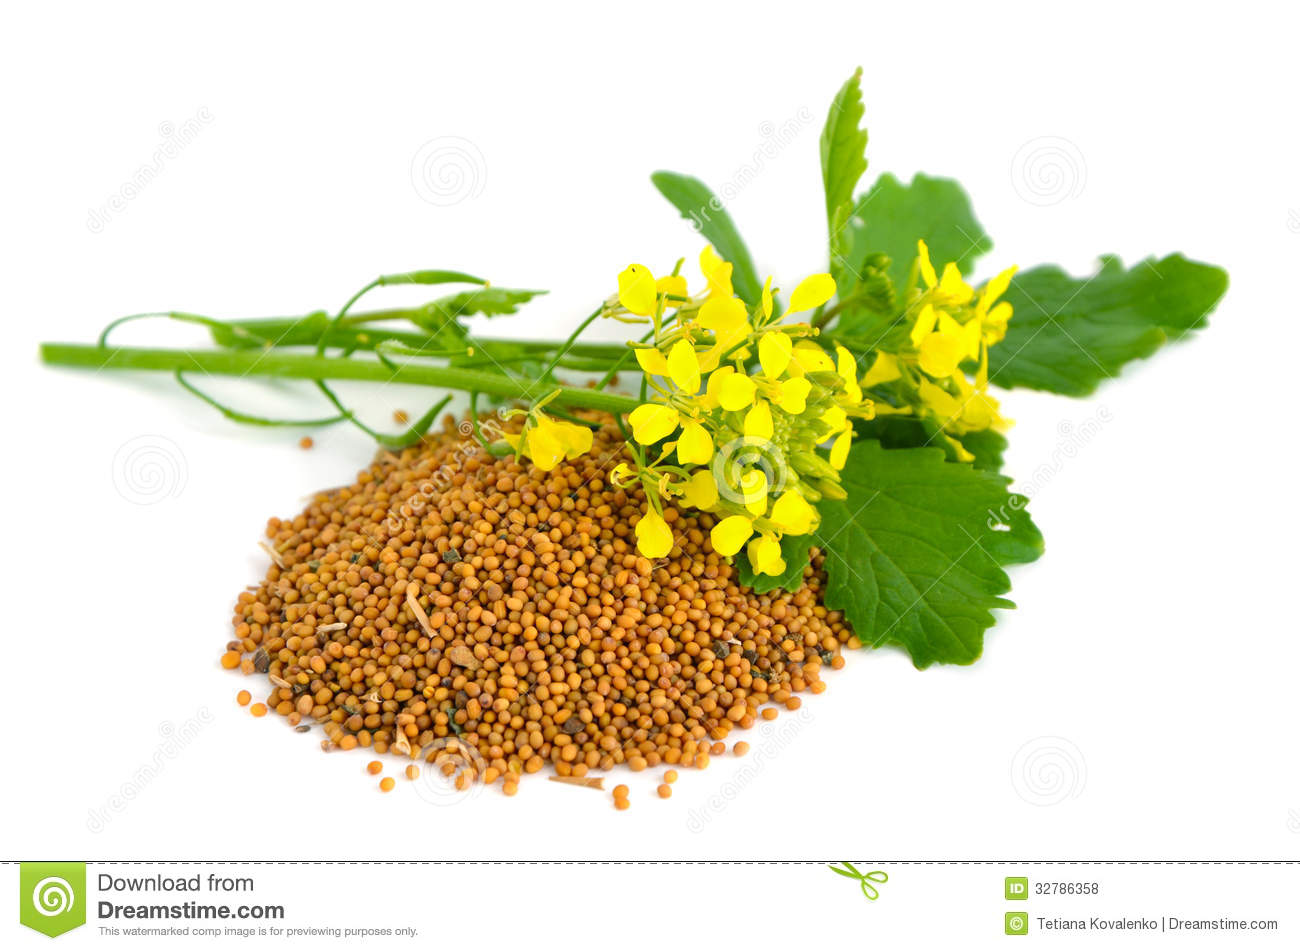 Collection Of Mustard Vector Illustrations: Mustard Seeds, Flower,..  Royalty Free Cliparts, Vectors, And Stock Illustration. Image 136814789.